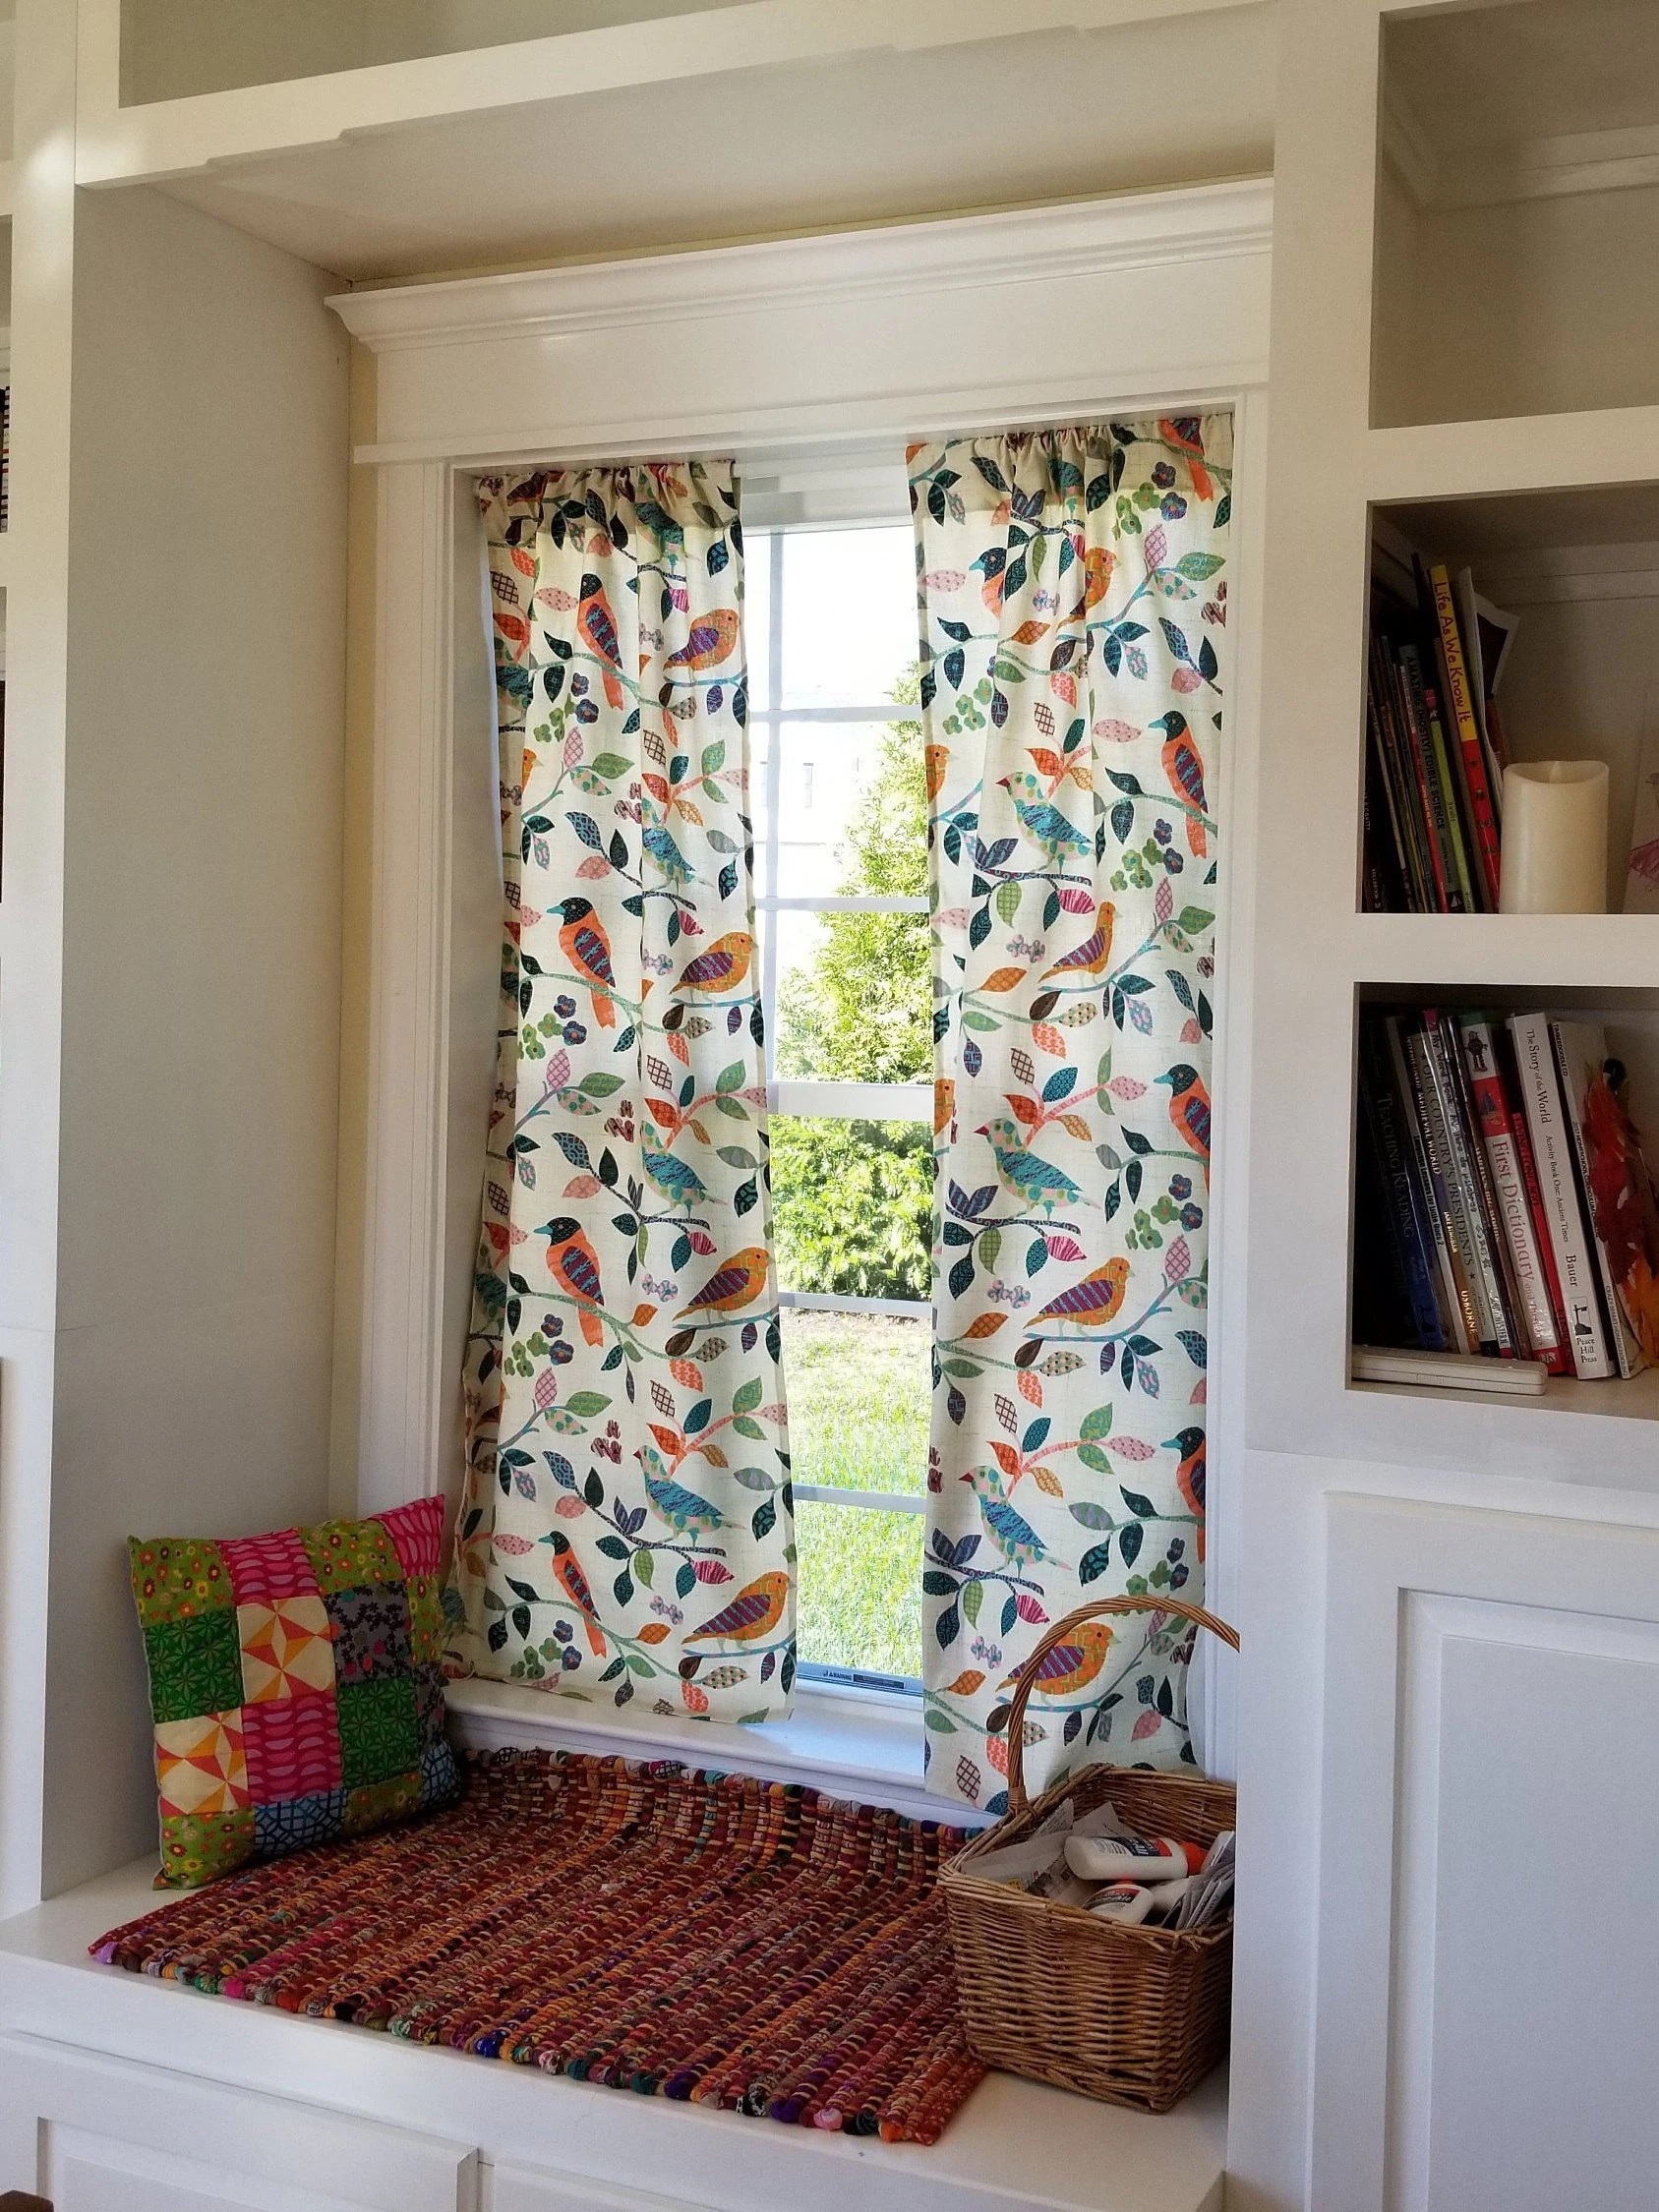 kitchen curtians white decor curtains etsy colorful print curtain panels window treatments birds shabby chic vintage drapery drapes